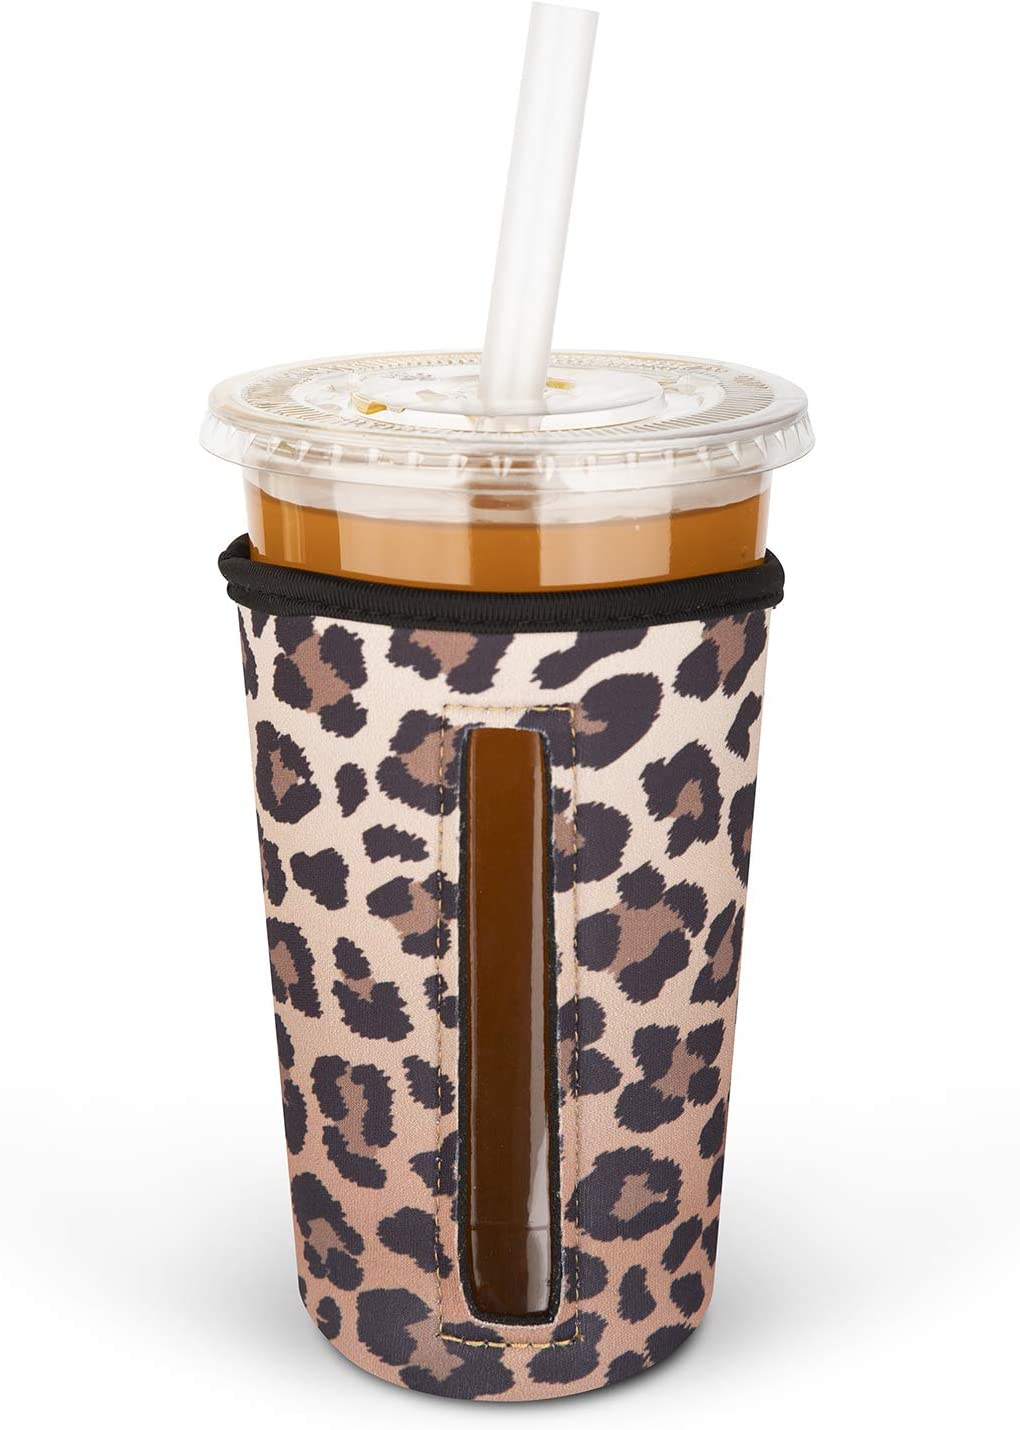 MEETI Reusable Iced Coffee Cup Insulator Sleeve for Cold Beverages, Neoprene Cup Holder Compatible with Starbucks, McDonald's Coffee, Dunkin Donuts, Tim Hortons and More, Large, Multicolor1